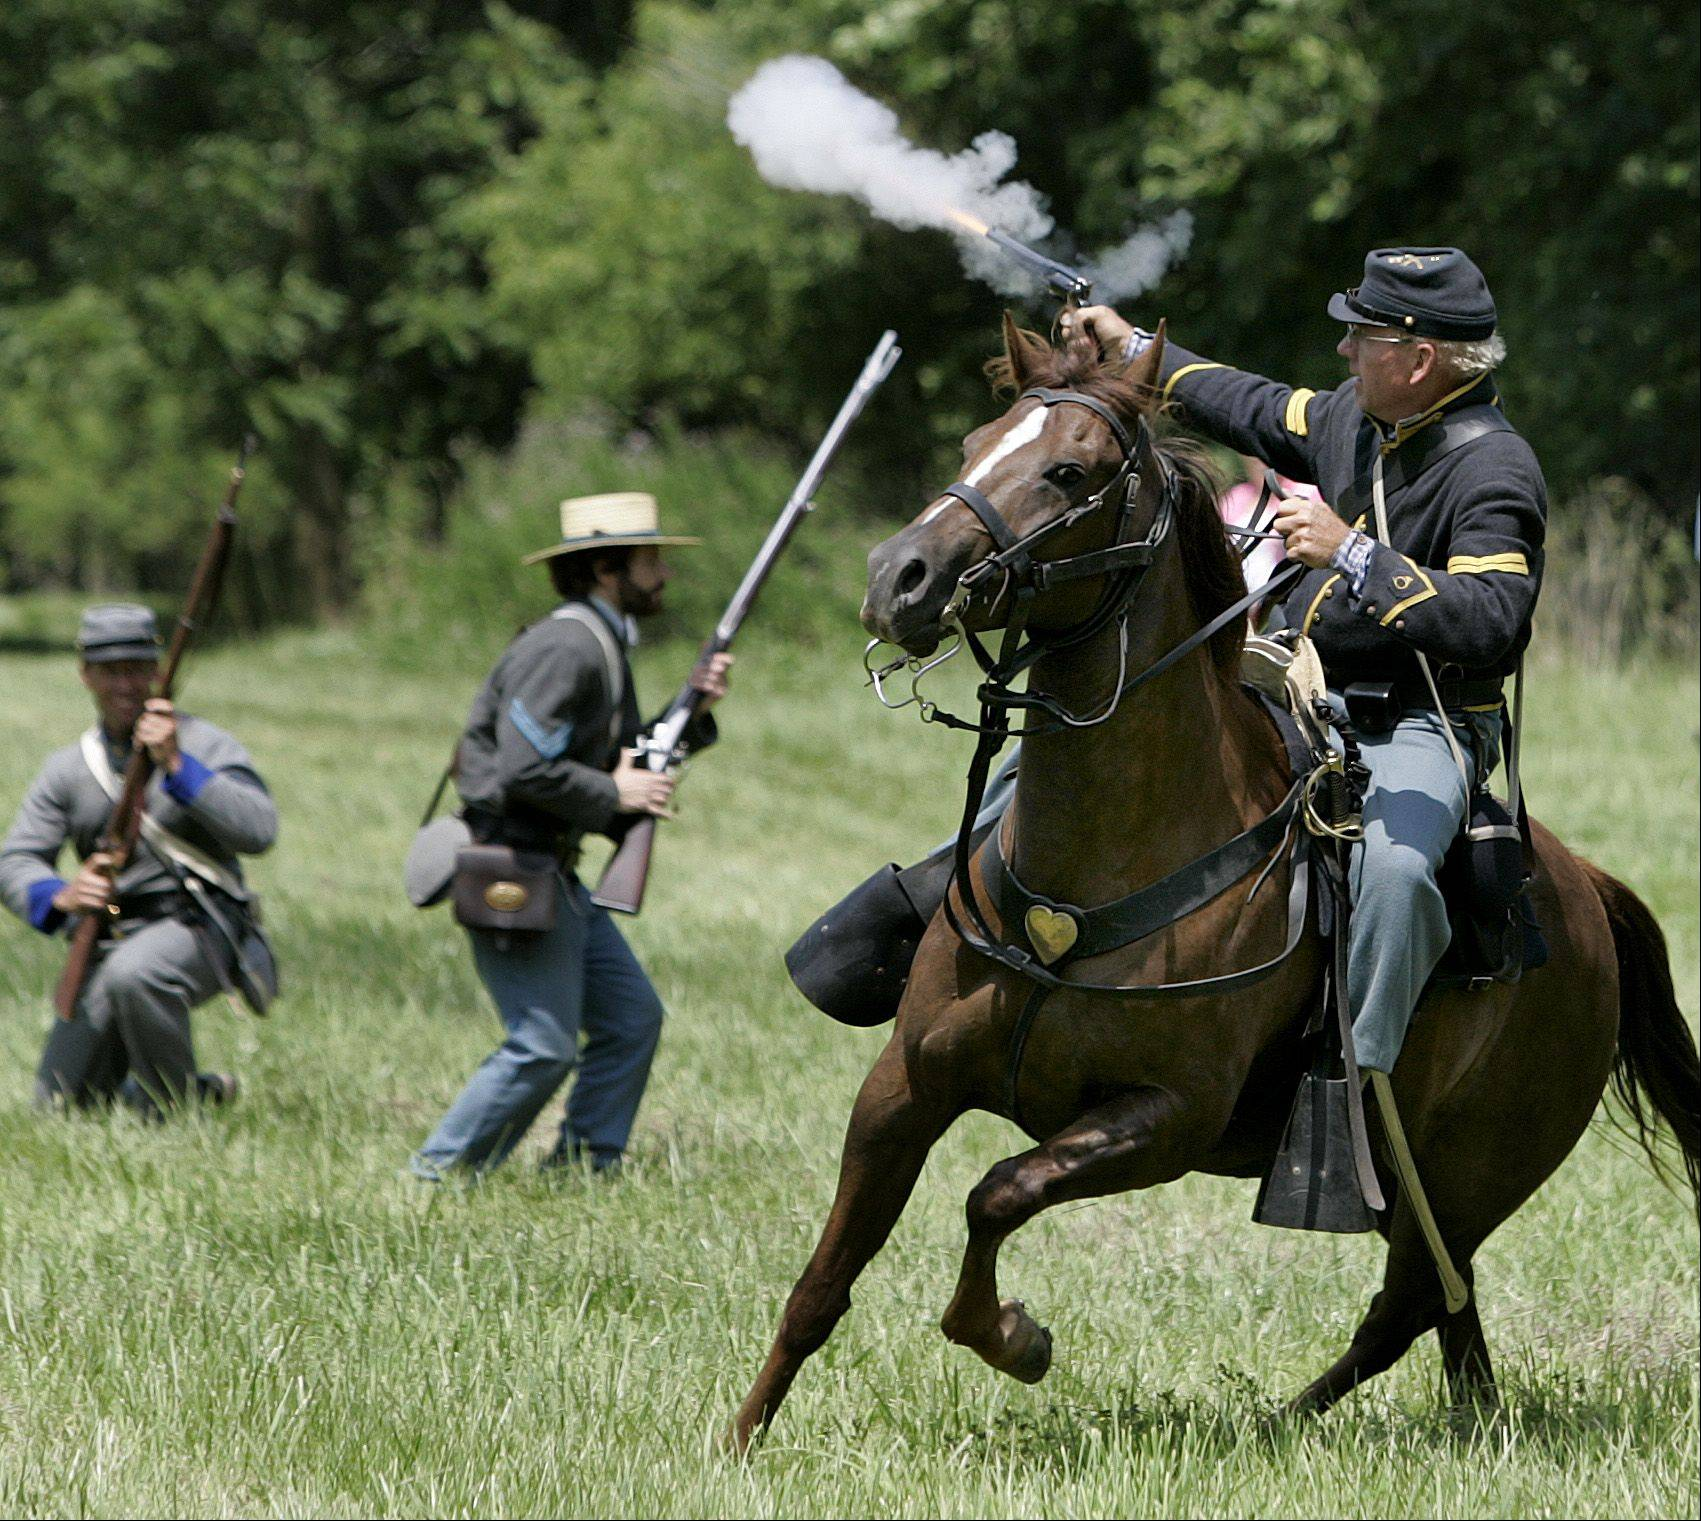 Watch re-enactments of famous Civil War battles at the Civil War Days at the Lakewood Forest Preserve in Wauconda.